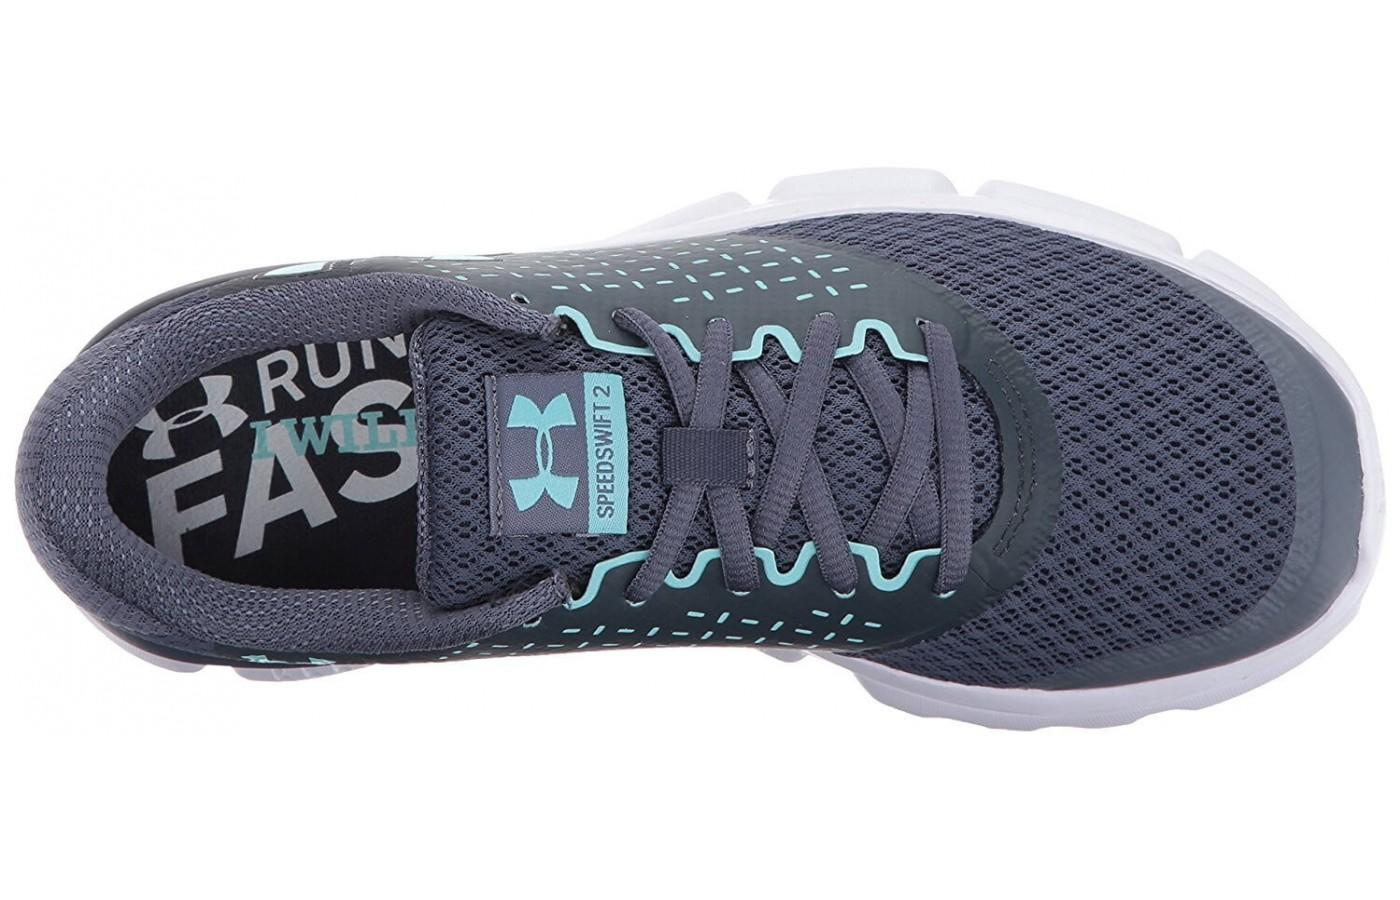 Under Armour Speed Swift 2 has a regular lacing system